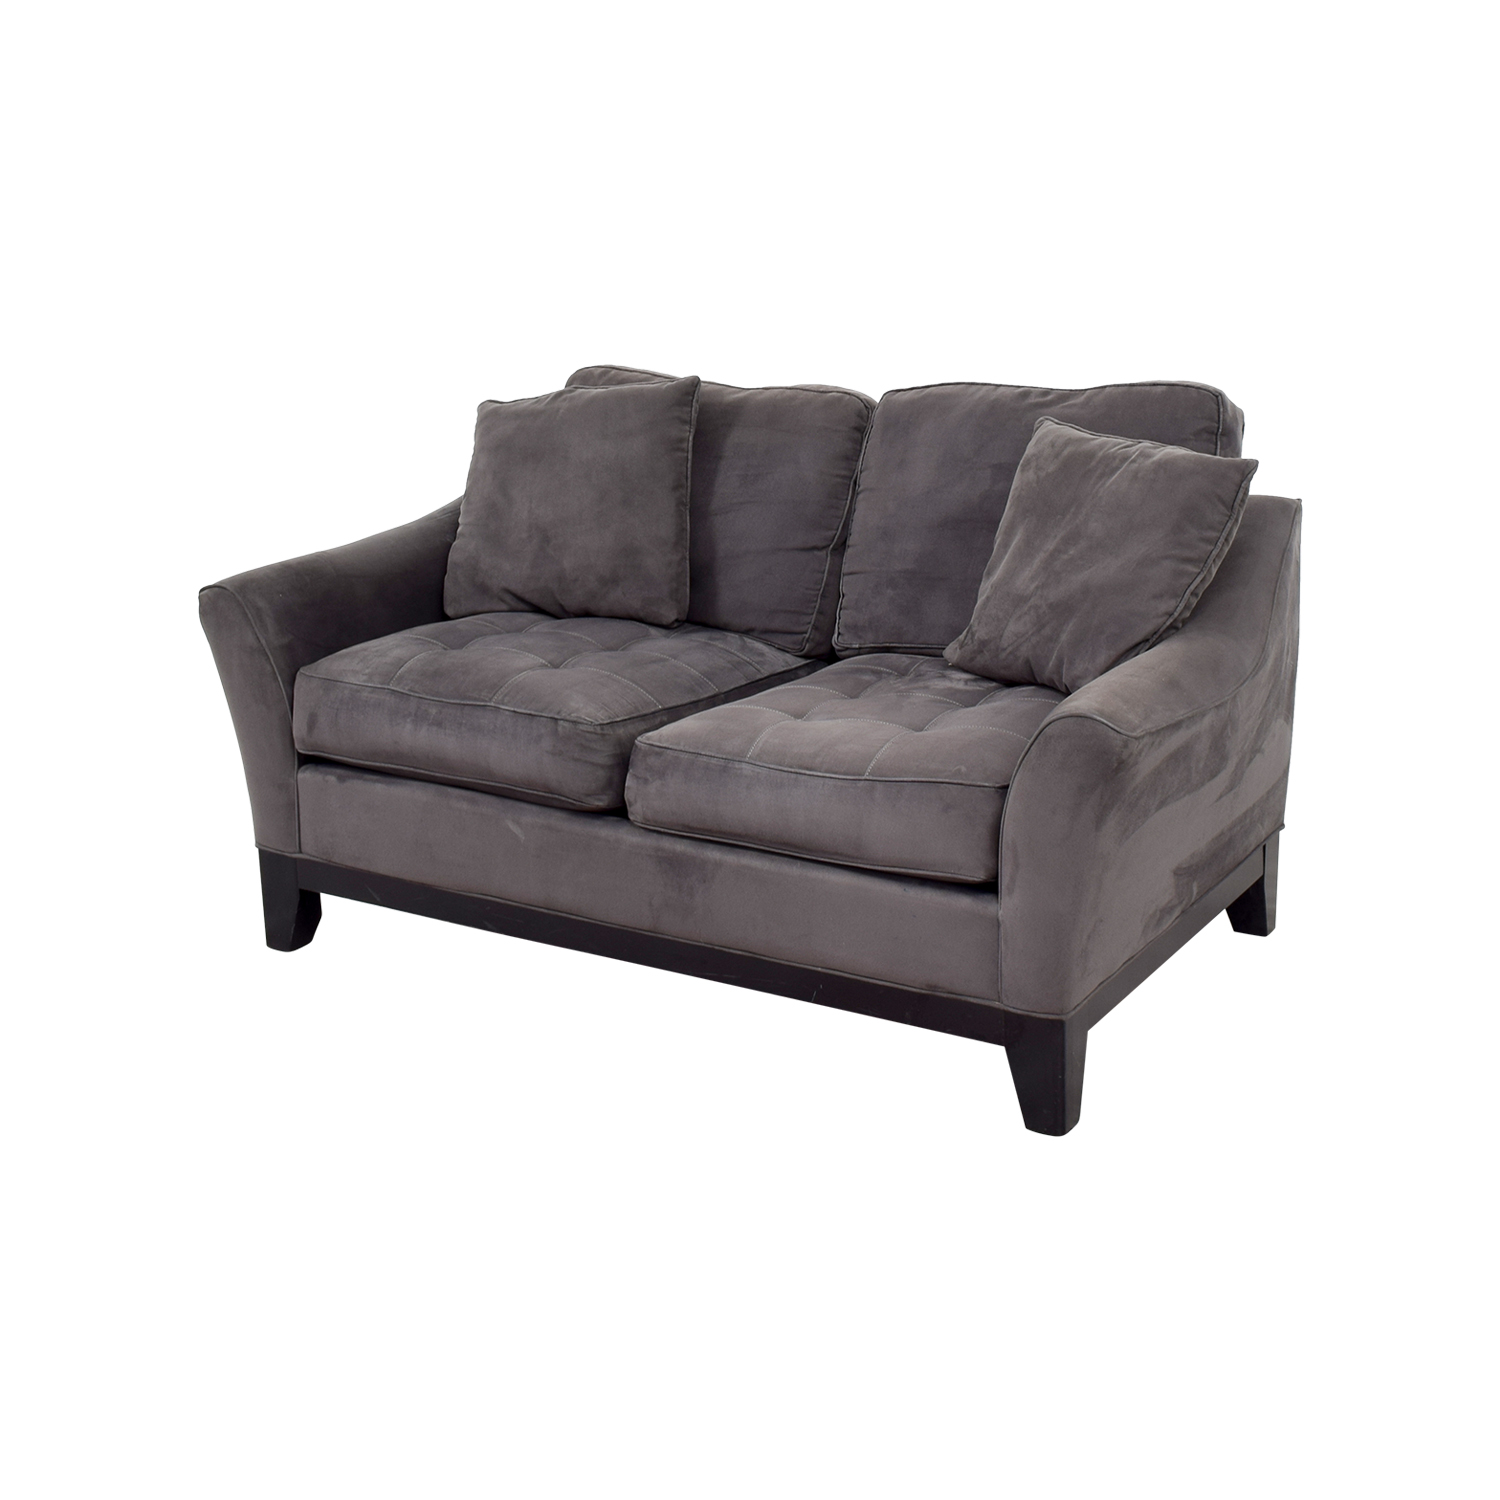 dp amazon upholstery loveseat microfiber cocoa kitchen simmons com sofa dining harper and